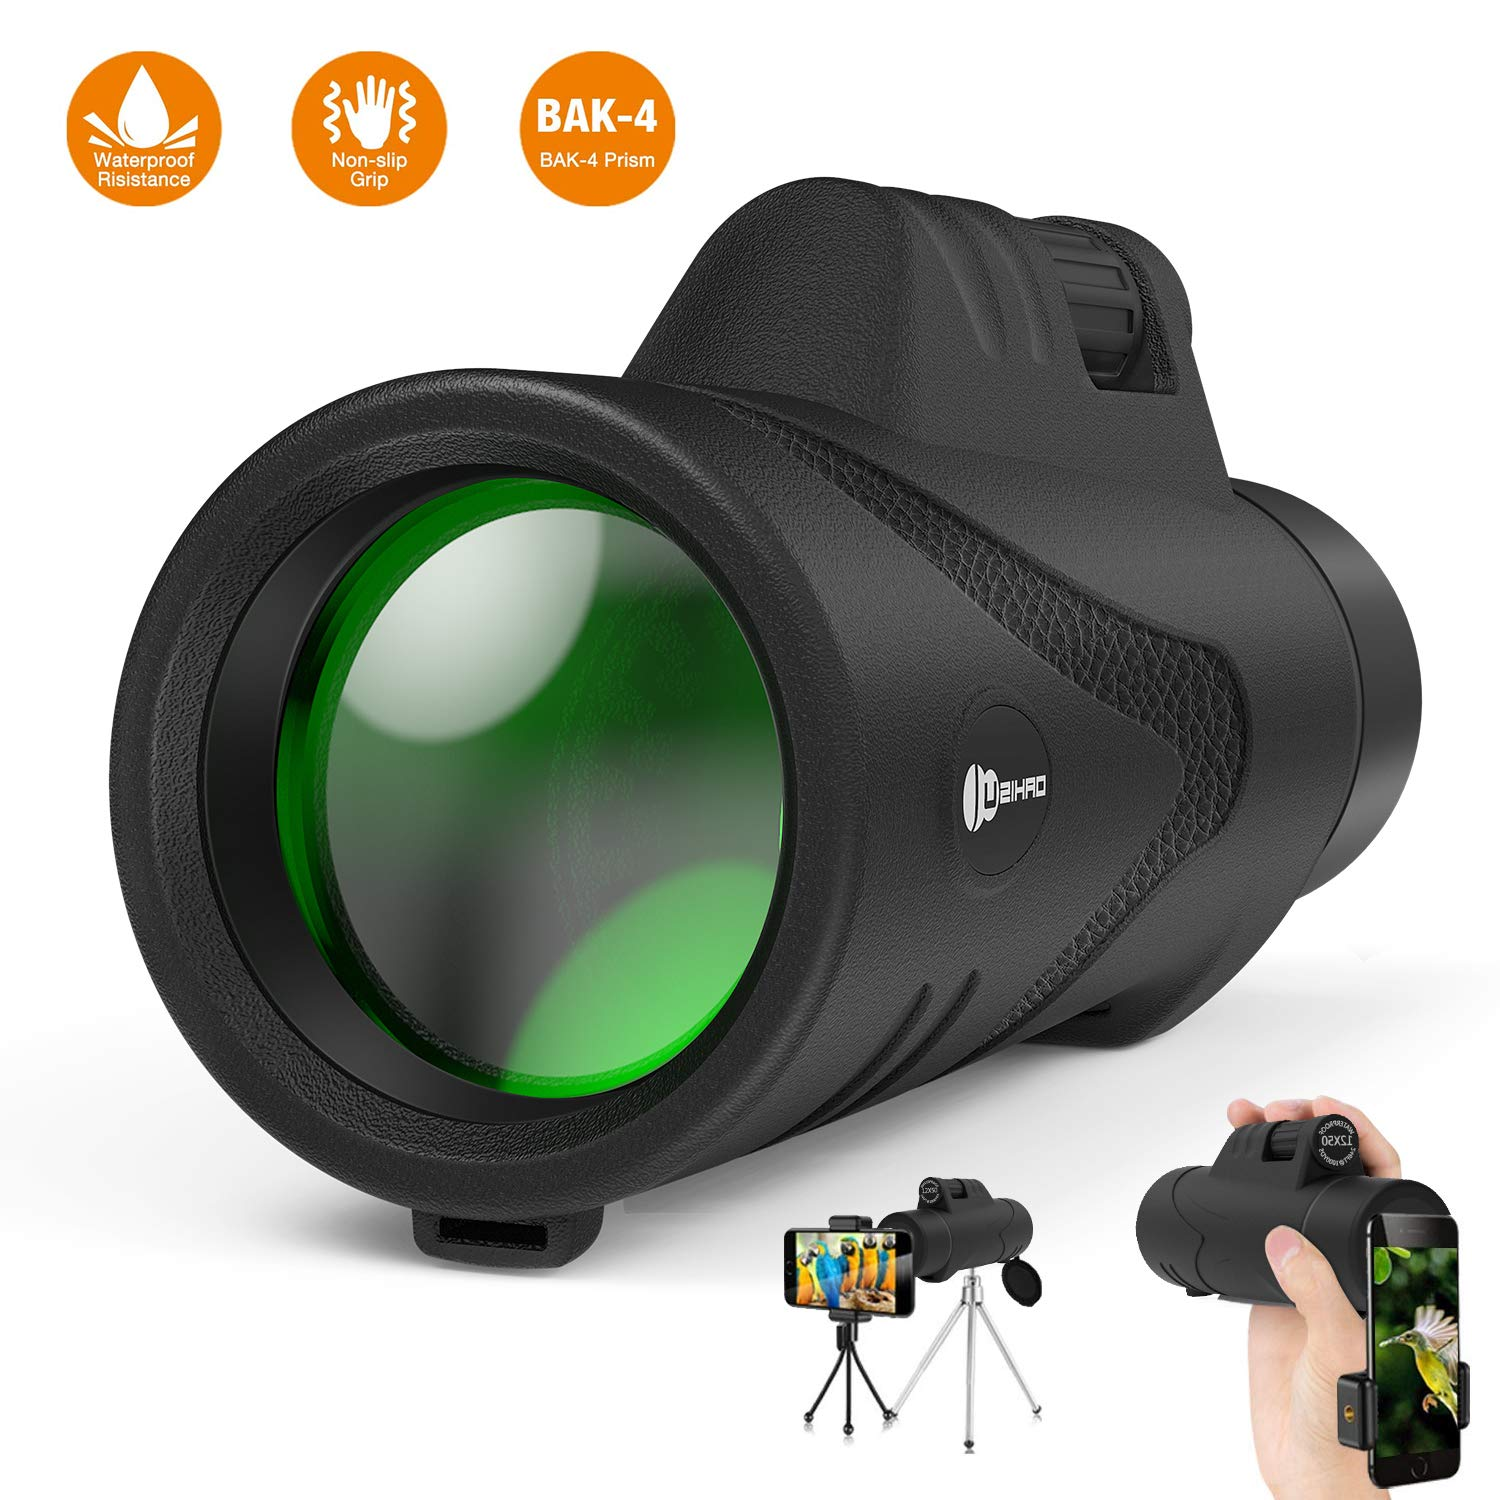 Monocular Telescope,12X50 JUZIHAO High Power Waterproof- Shockproof HD Monocular with Smartphone Holder & Tripod,Monocular BAK4 Prism for Wildlife Bird Watching Hunting Camping Travelling Wildlife